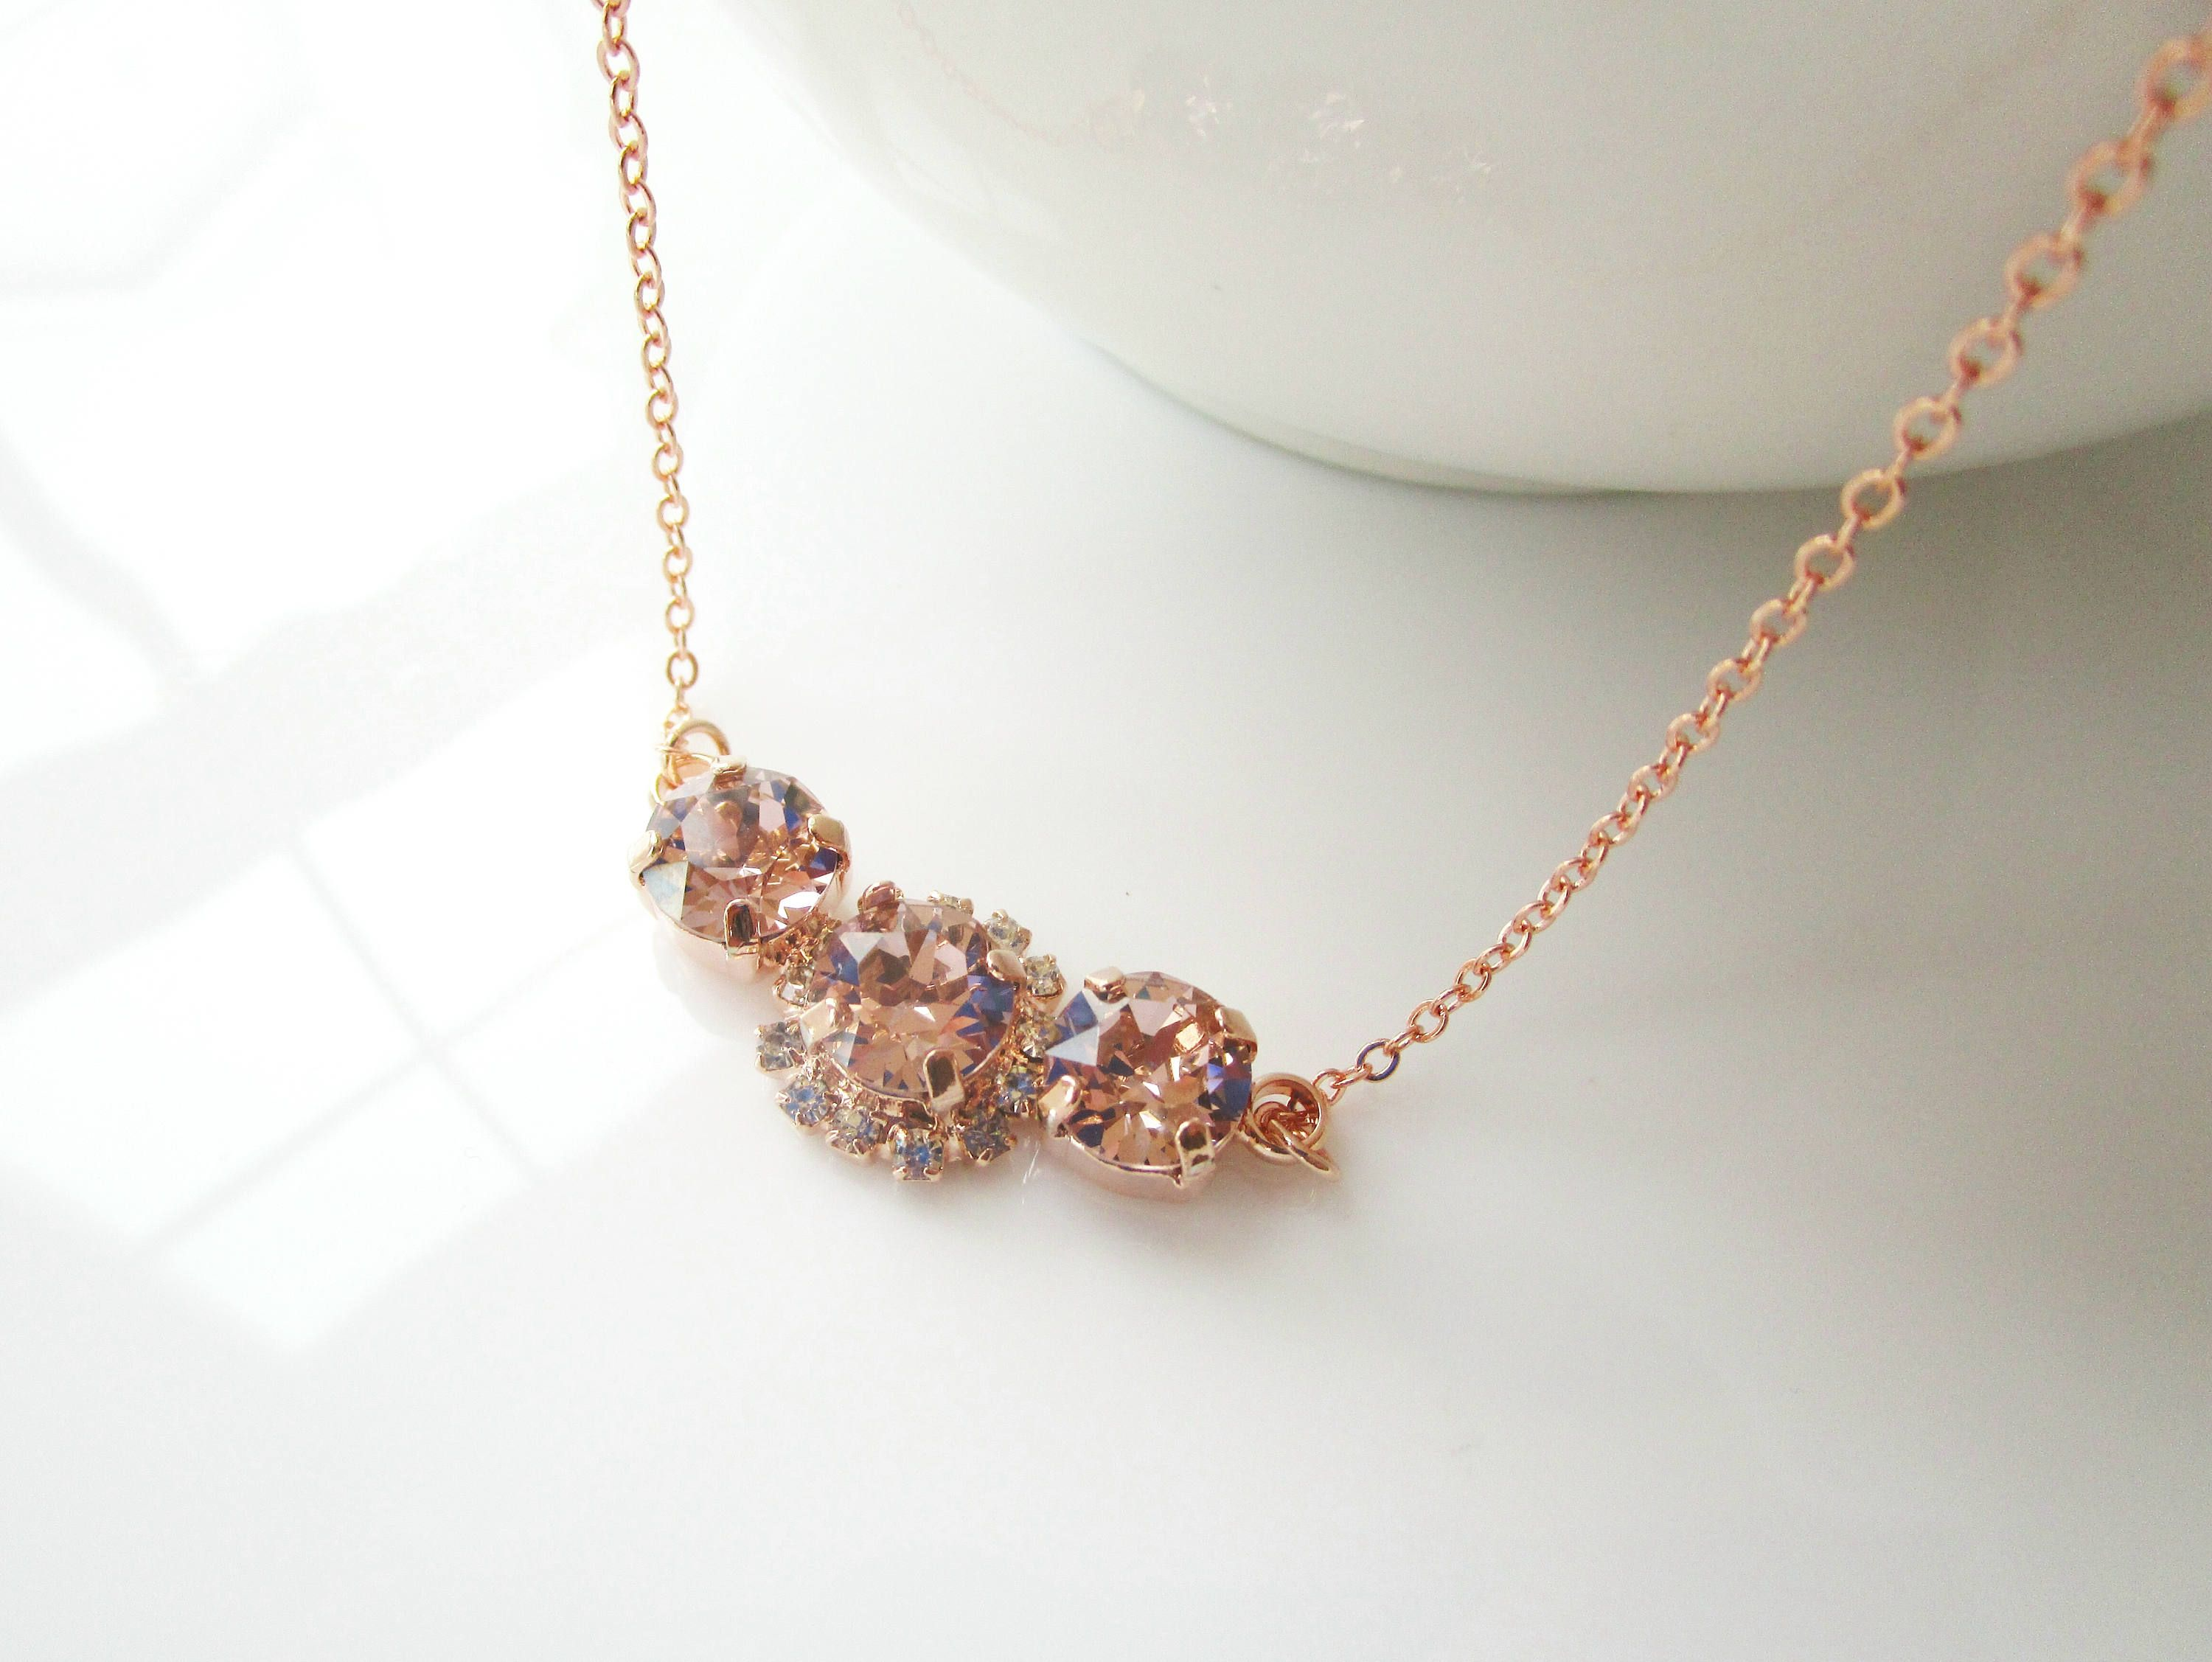 enlarge crystal swarovski necklace by blush jewelry product detail productcatalog parties touchstone home regional